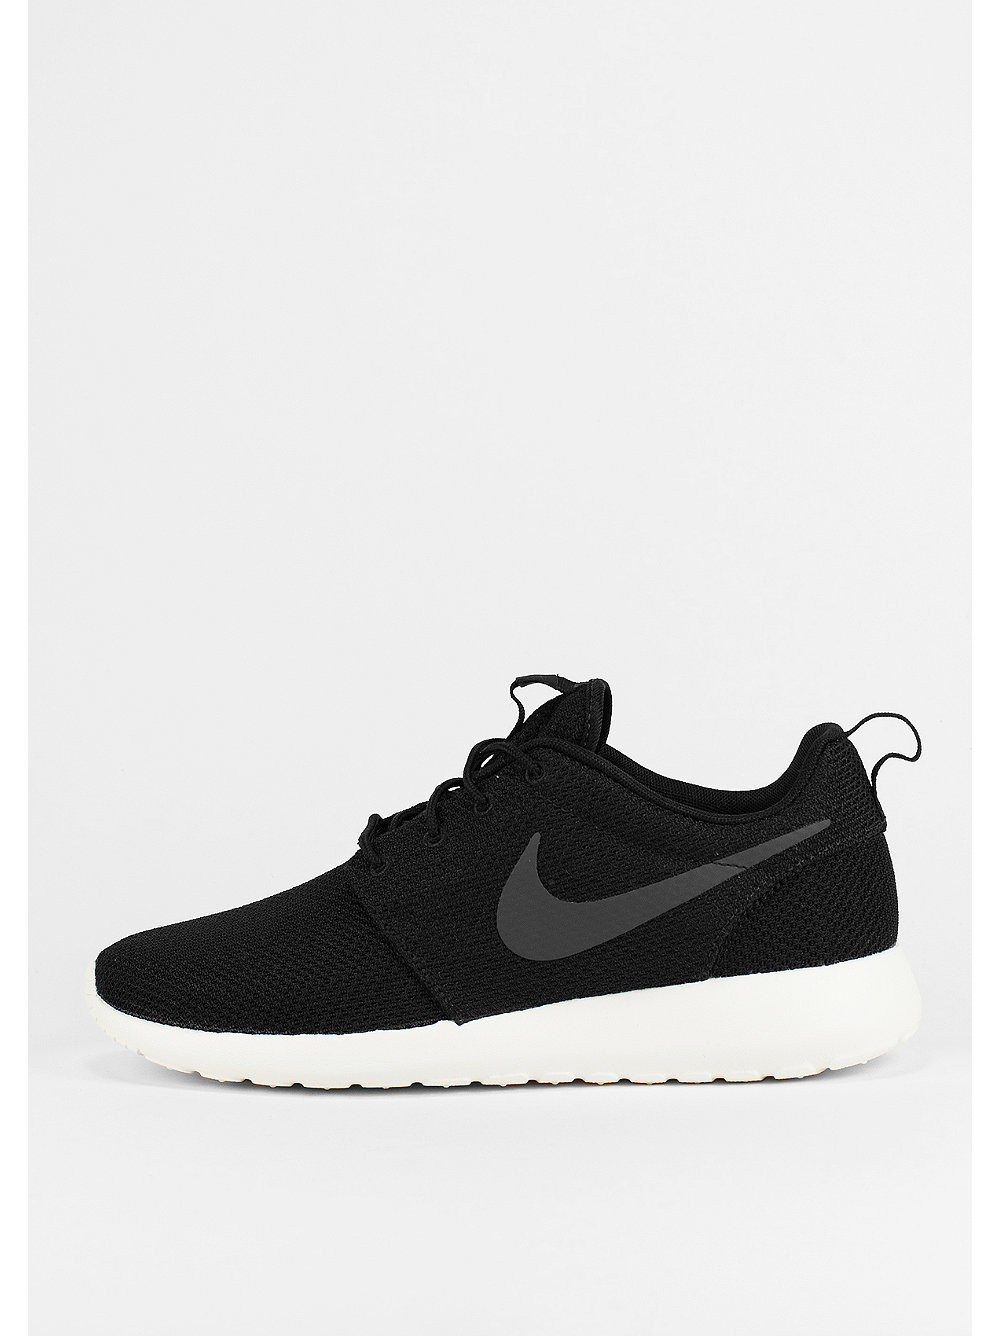 nike roshe run damen weiß snipes